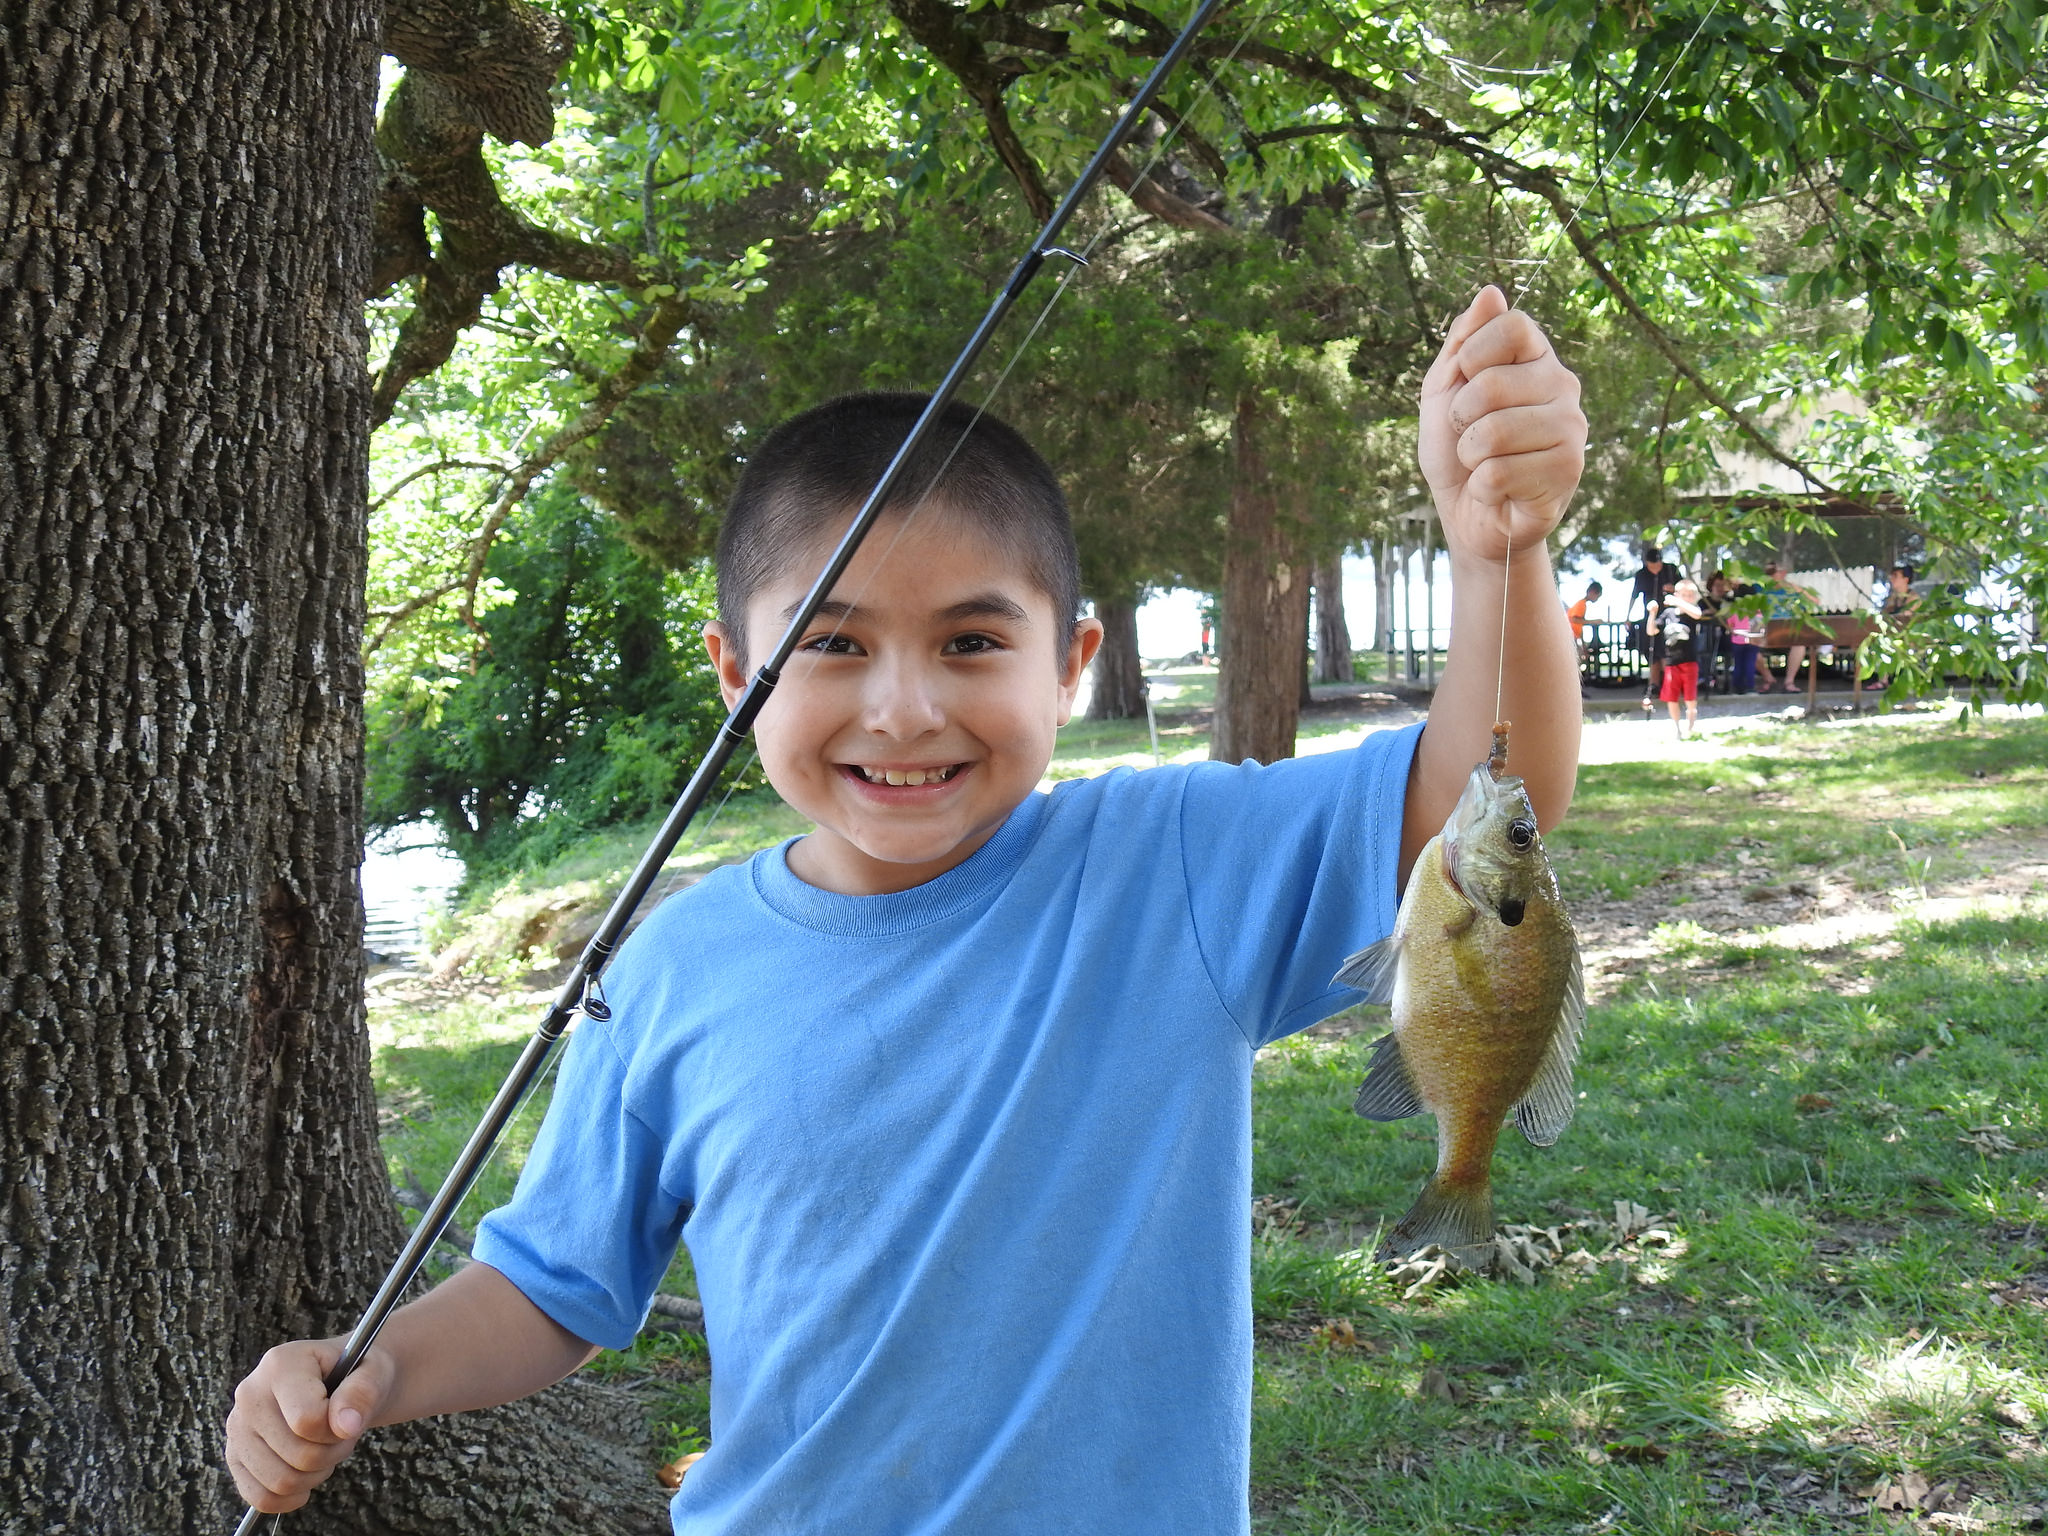 During Outdoor Adventures camp, kids learned how to become master fishermen!